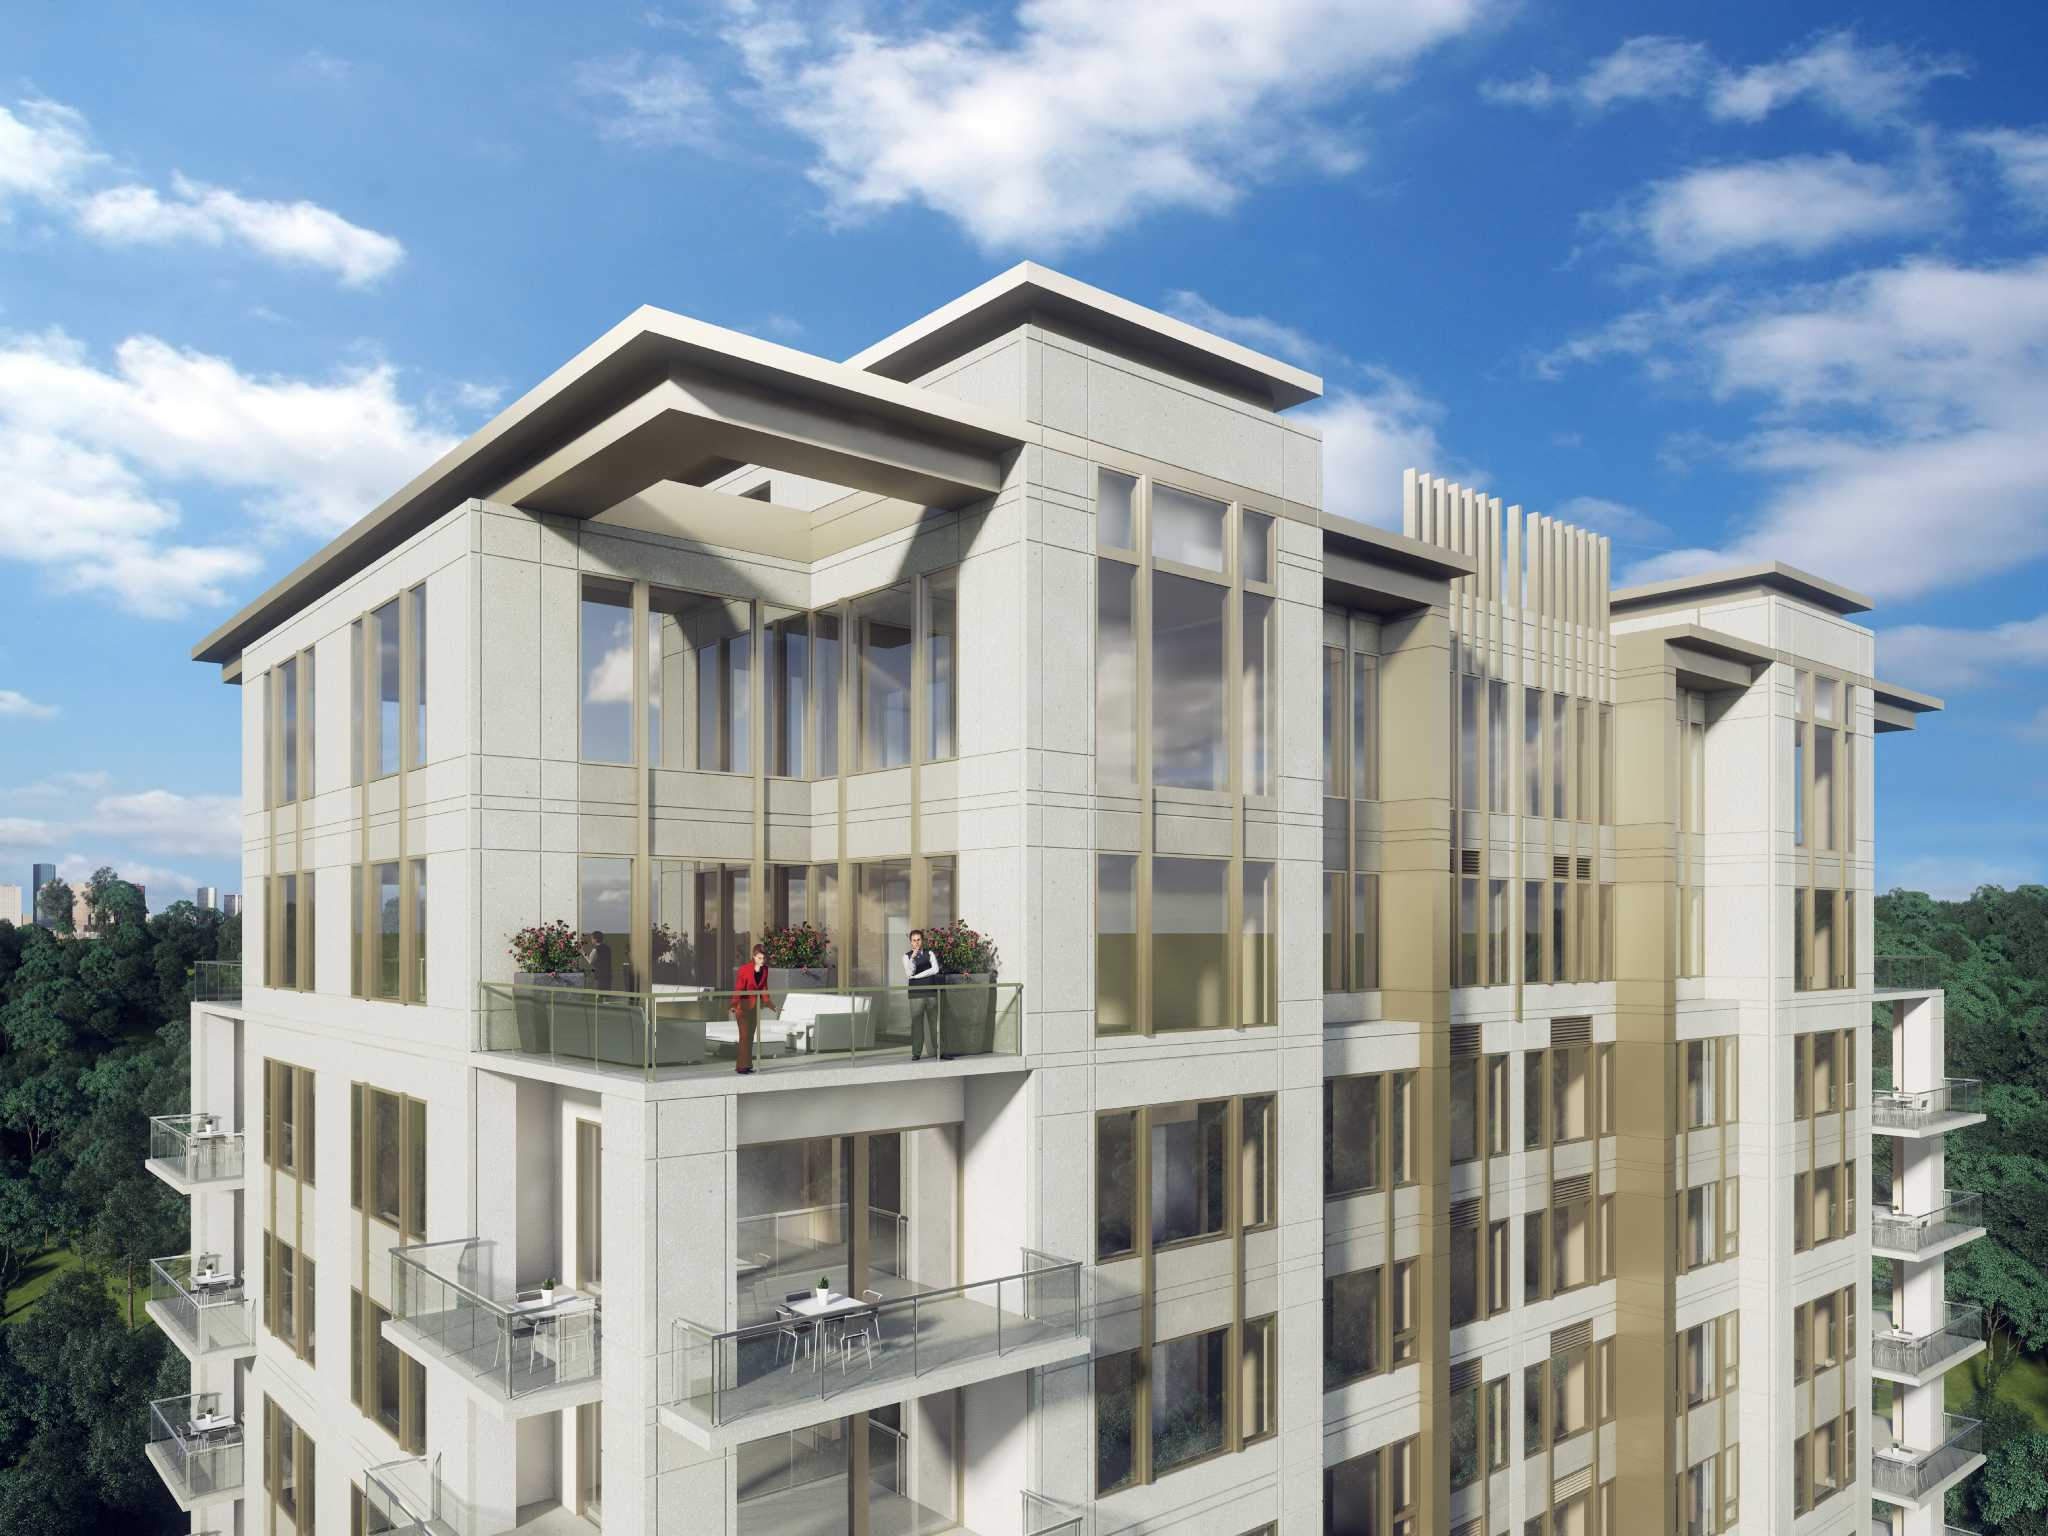 High Rise Condo Project Planned In Galleria Area